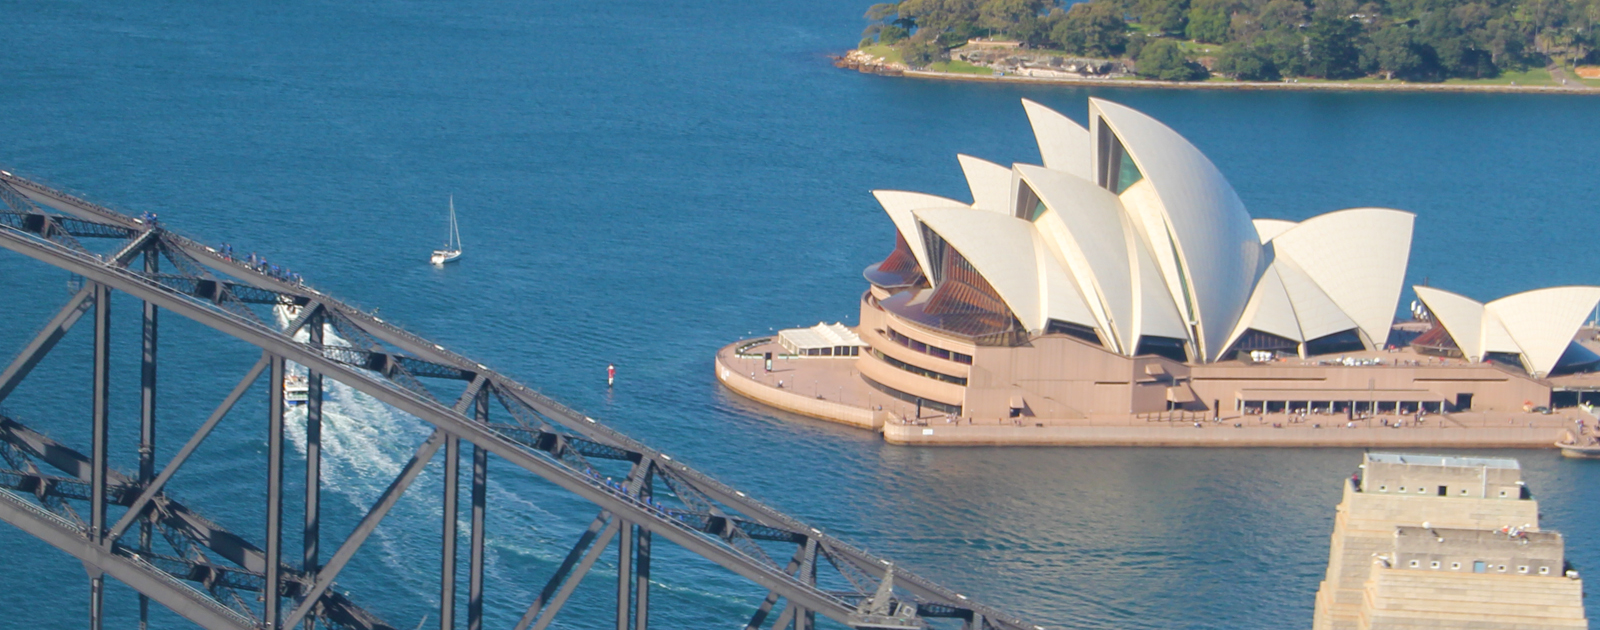 Services-Aerial-Filming-Sydney-Opera-House